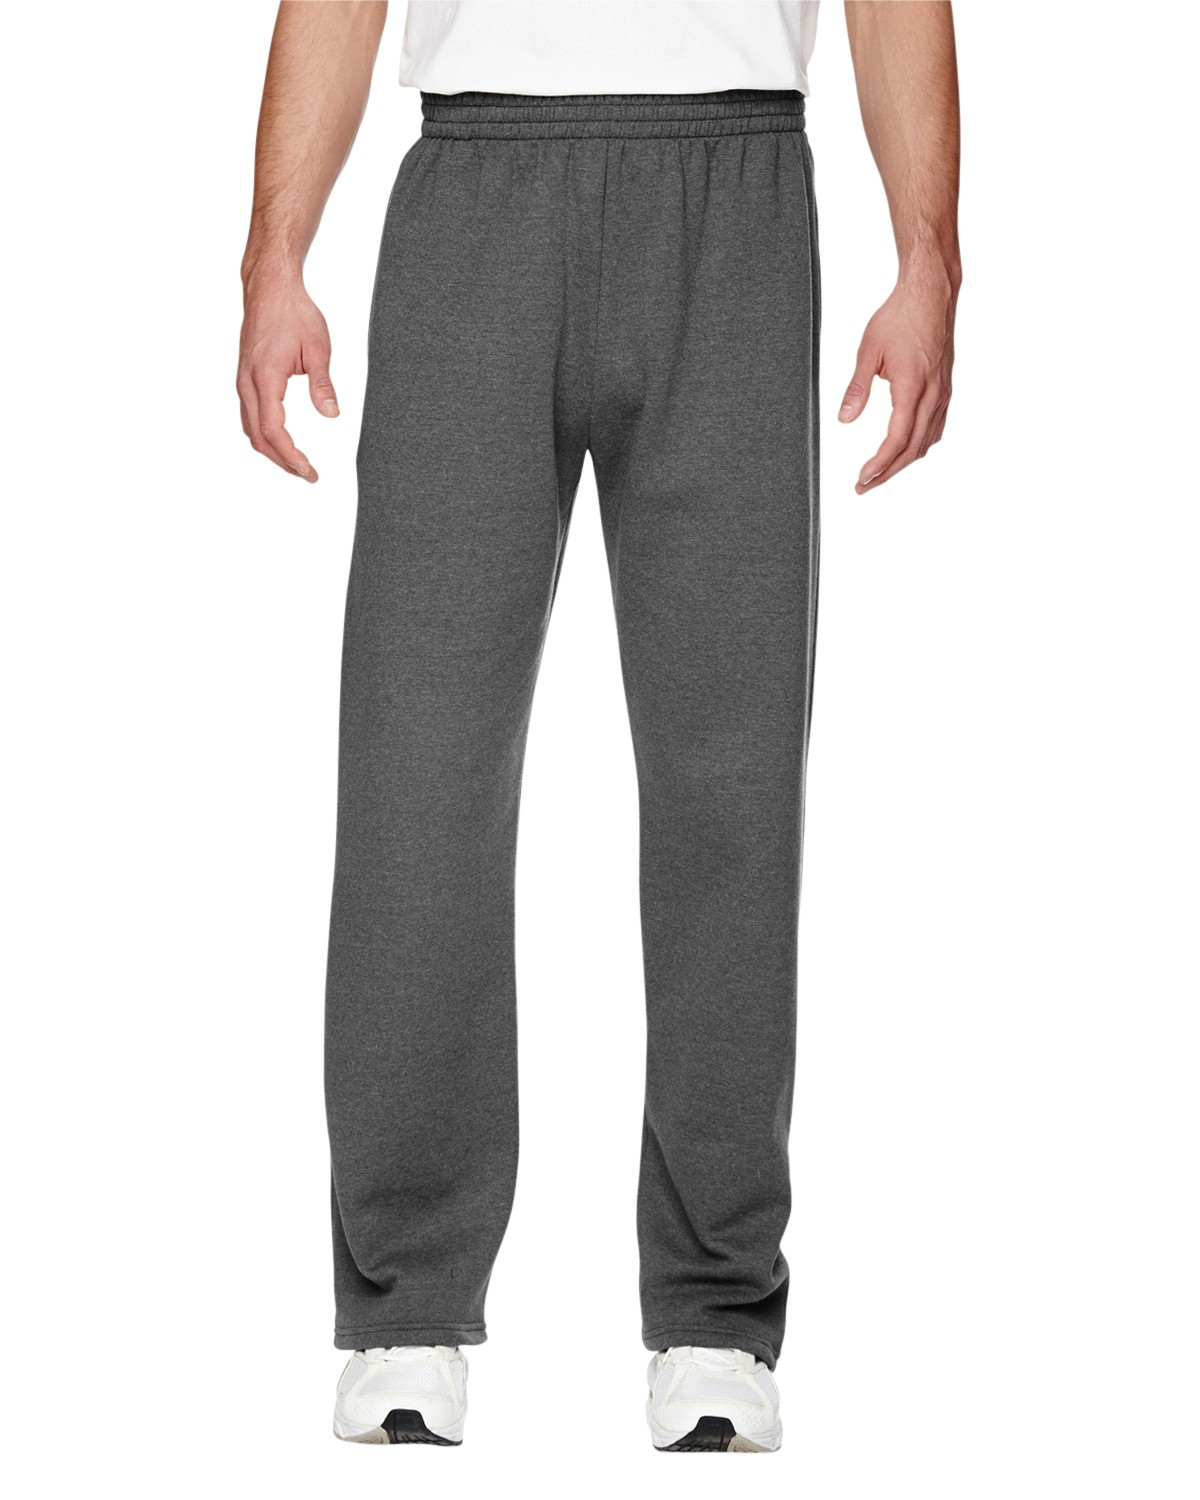 SF74R Fruit of the Loom CHARCOAL HEATHER